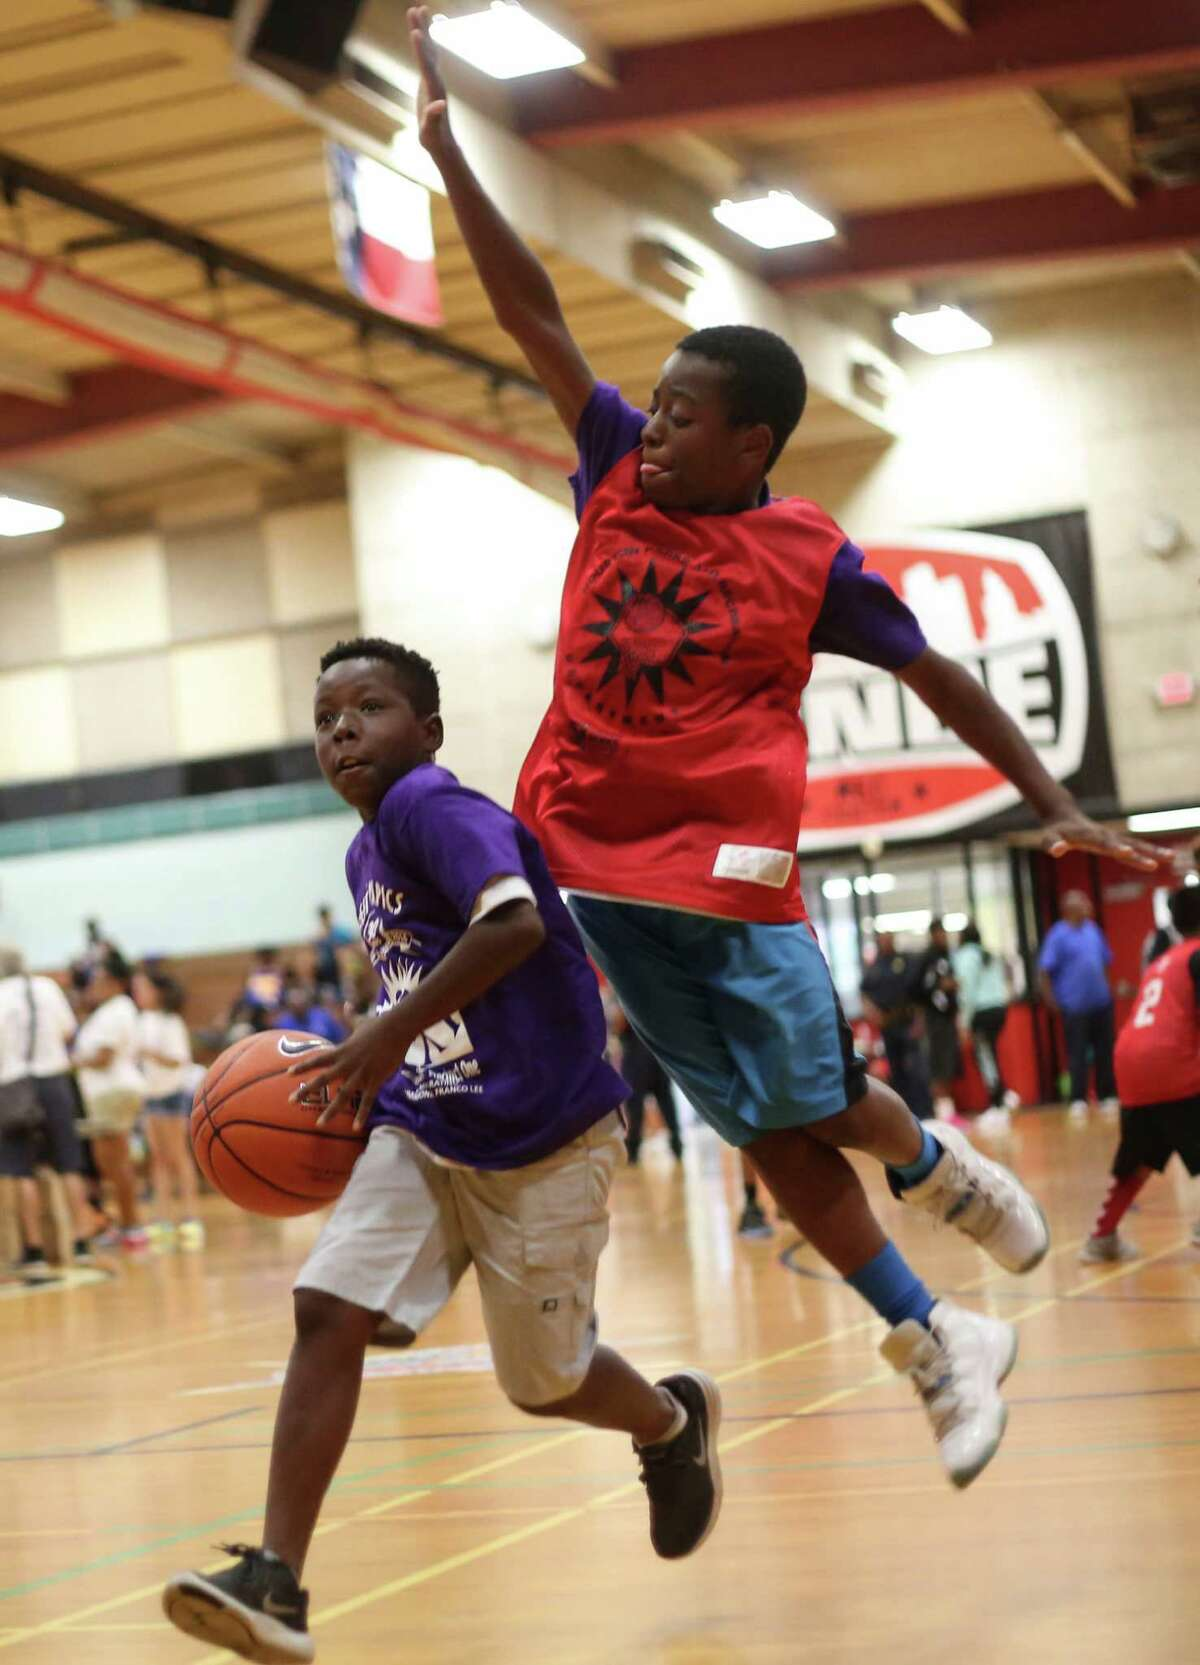 Benson Dorsey drives around Joseph Sanders during the 21st Annual Harris County Street Olympics' 3-on-3 Basketball Championship Tournament on Wednesday, July 13, 2016, in Houston.